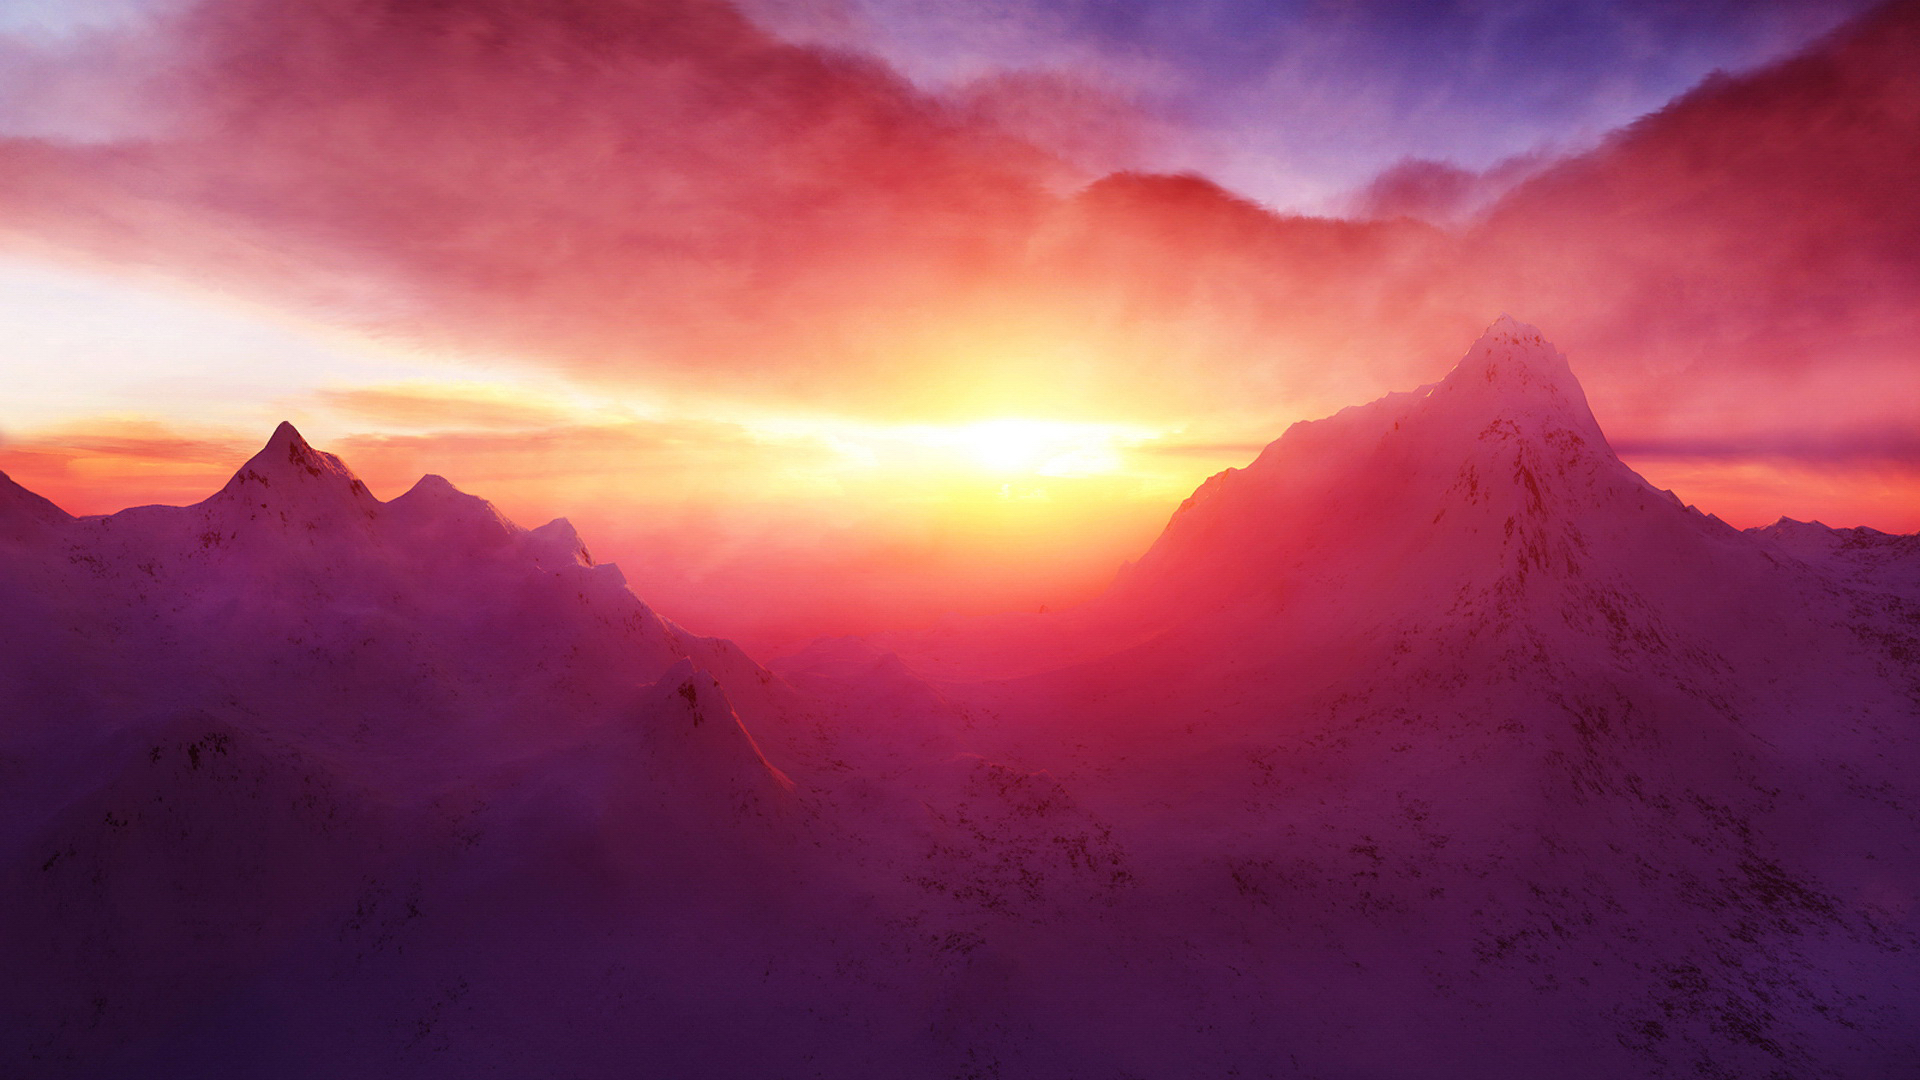 Snow and sunset1920 x 1080MountainsPhotography | MIRIADNA COM 822